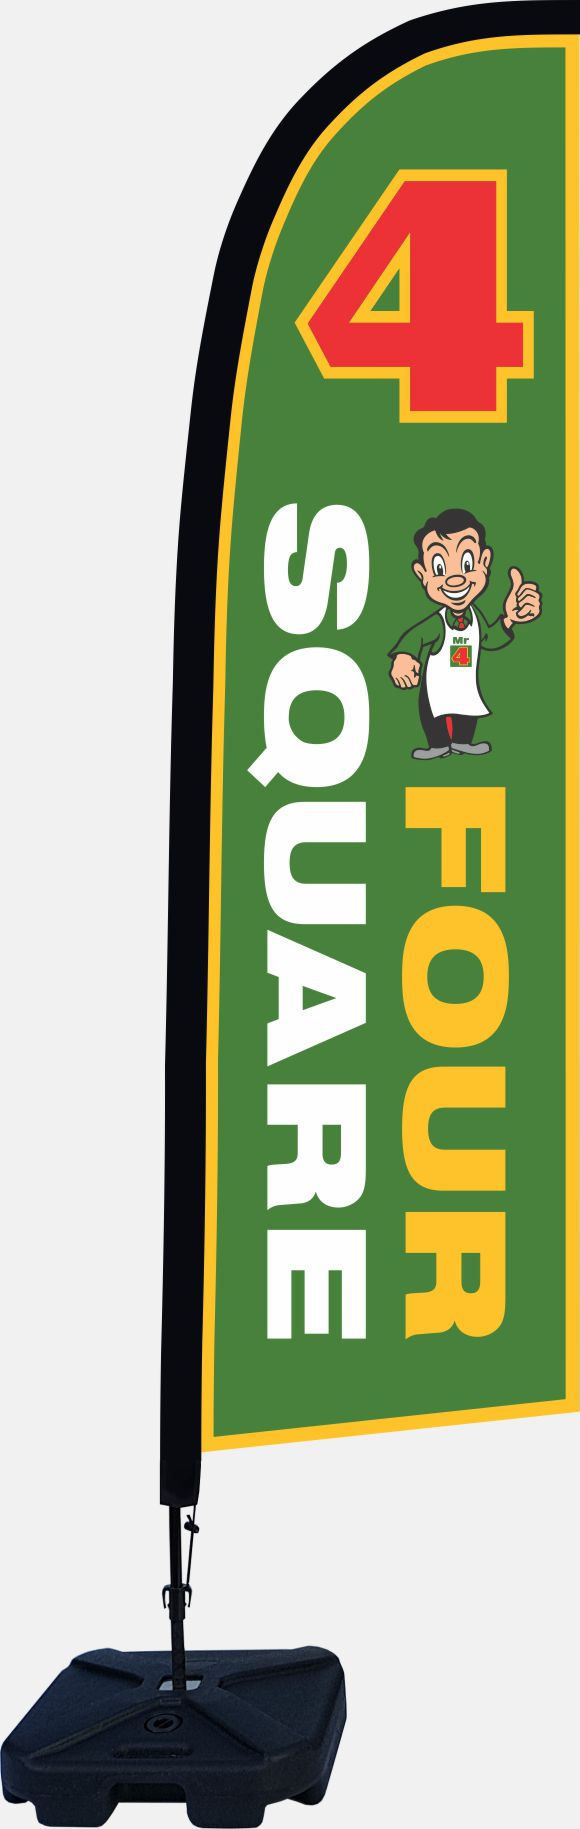 an example of Large advertising feather flags for grocery and dairy in Australia